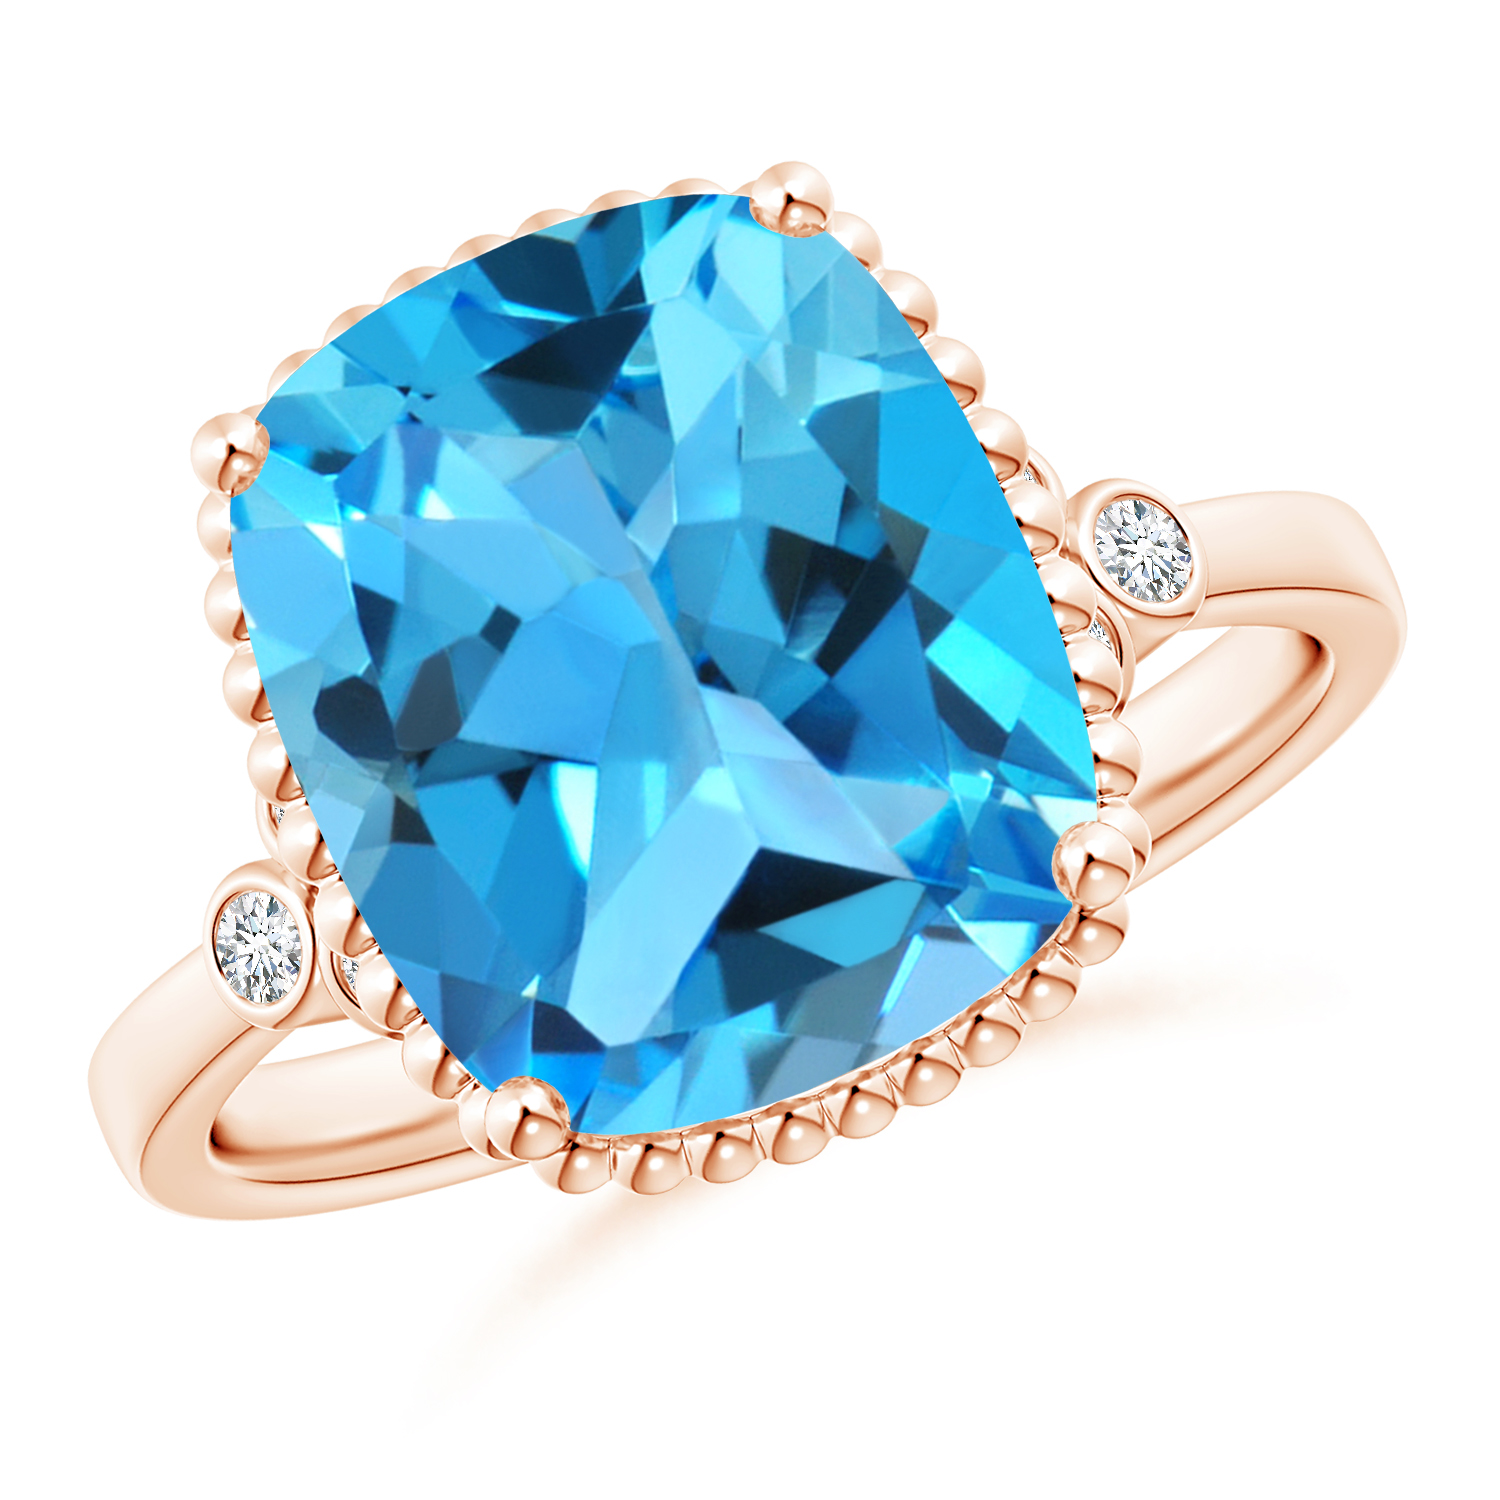 Cushion Swiss Blue Topaz Beaded Halo Ring with Diamonds - Angara.com